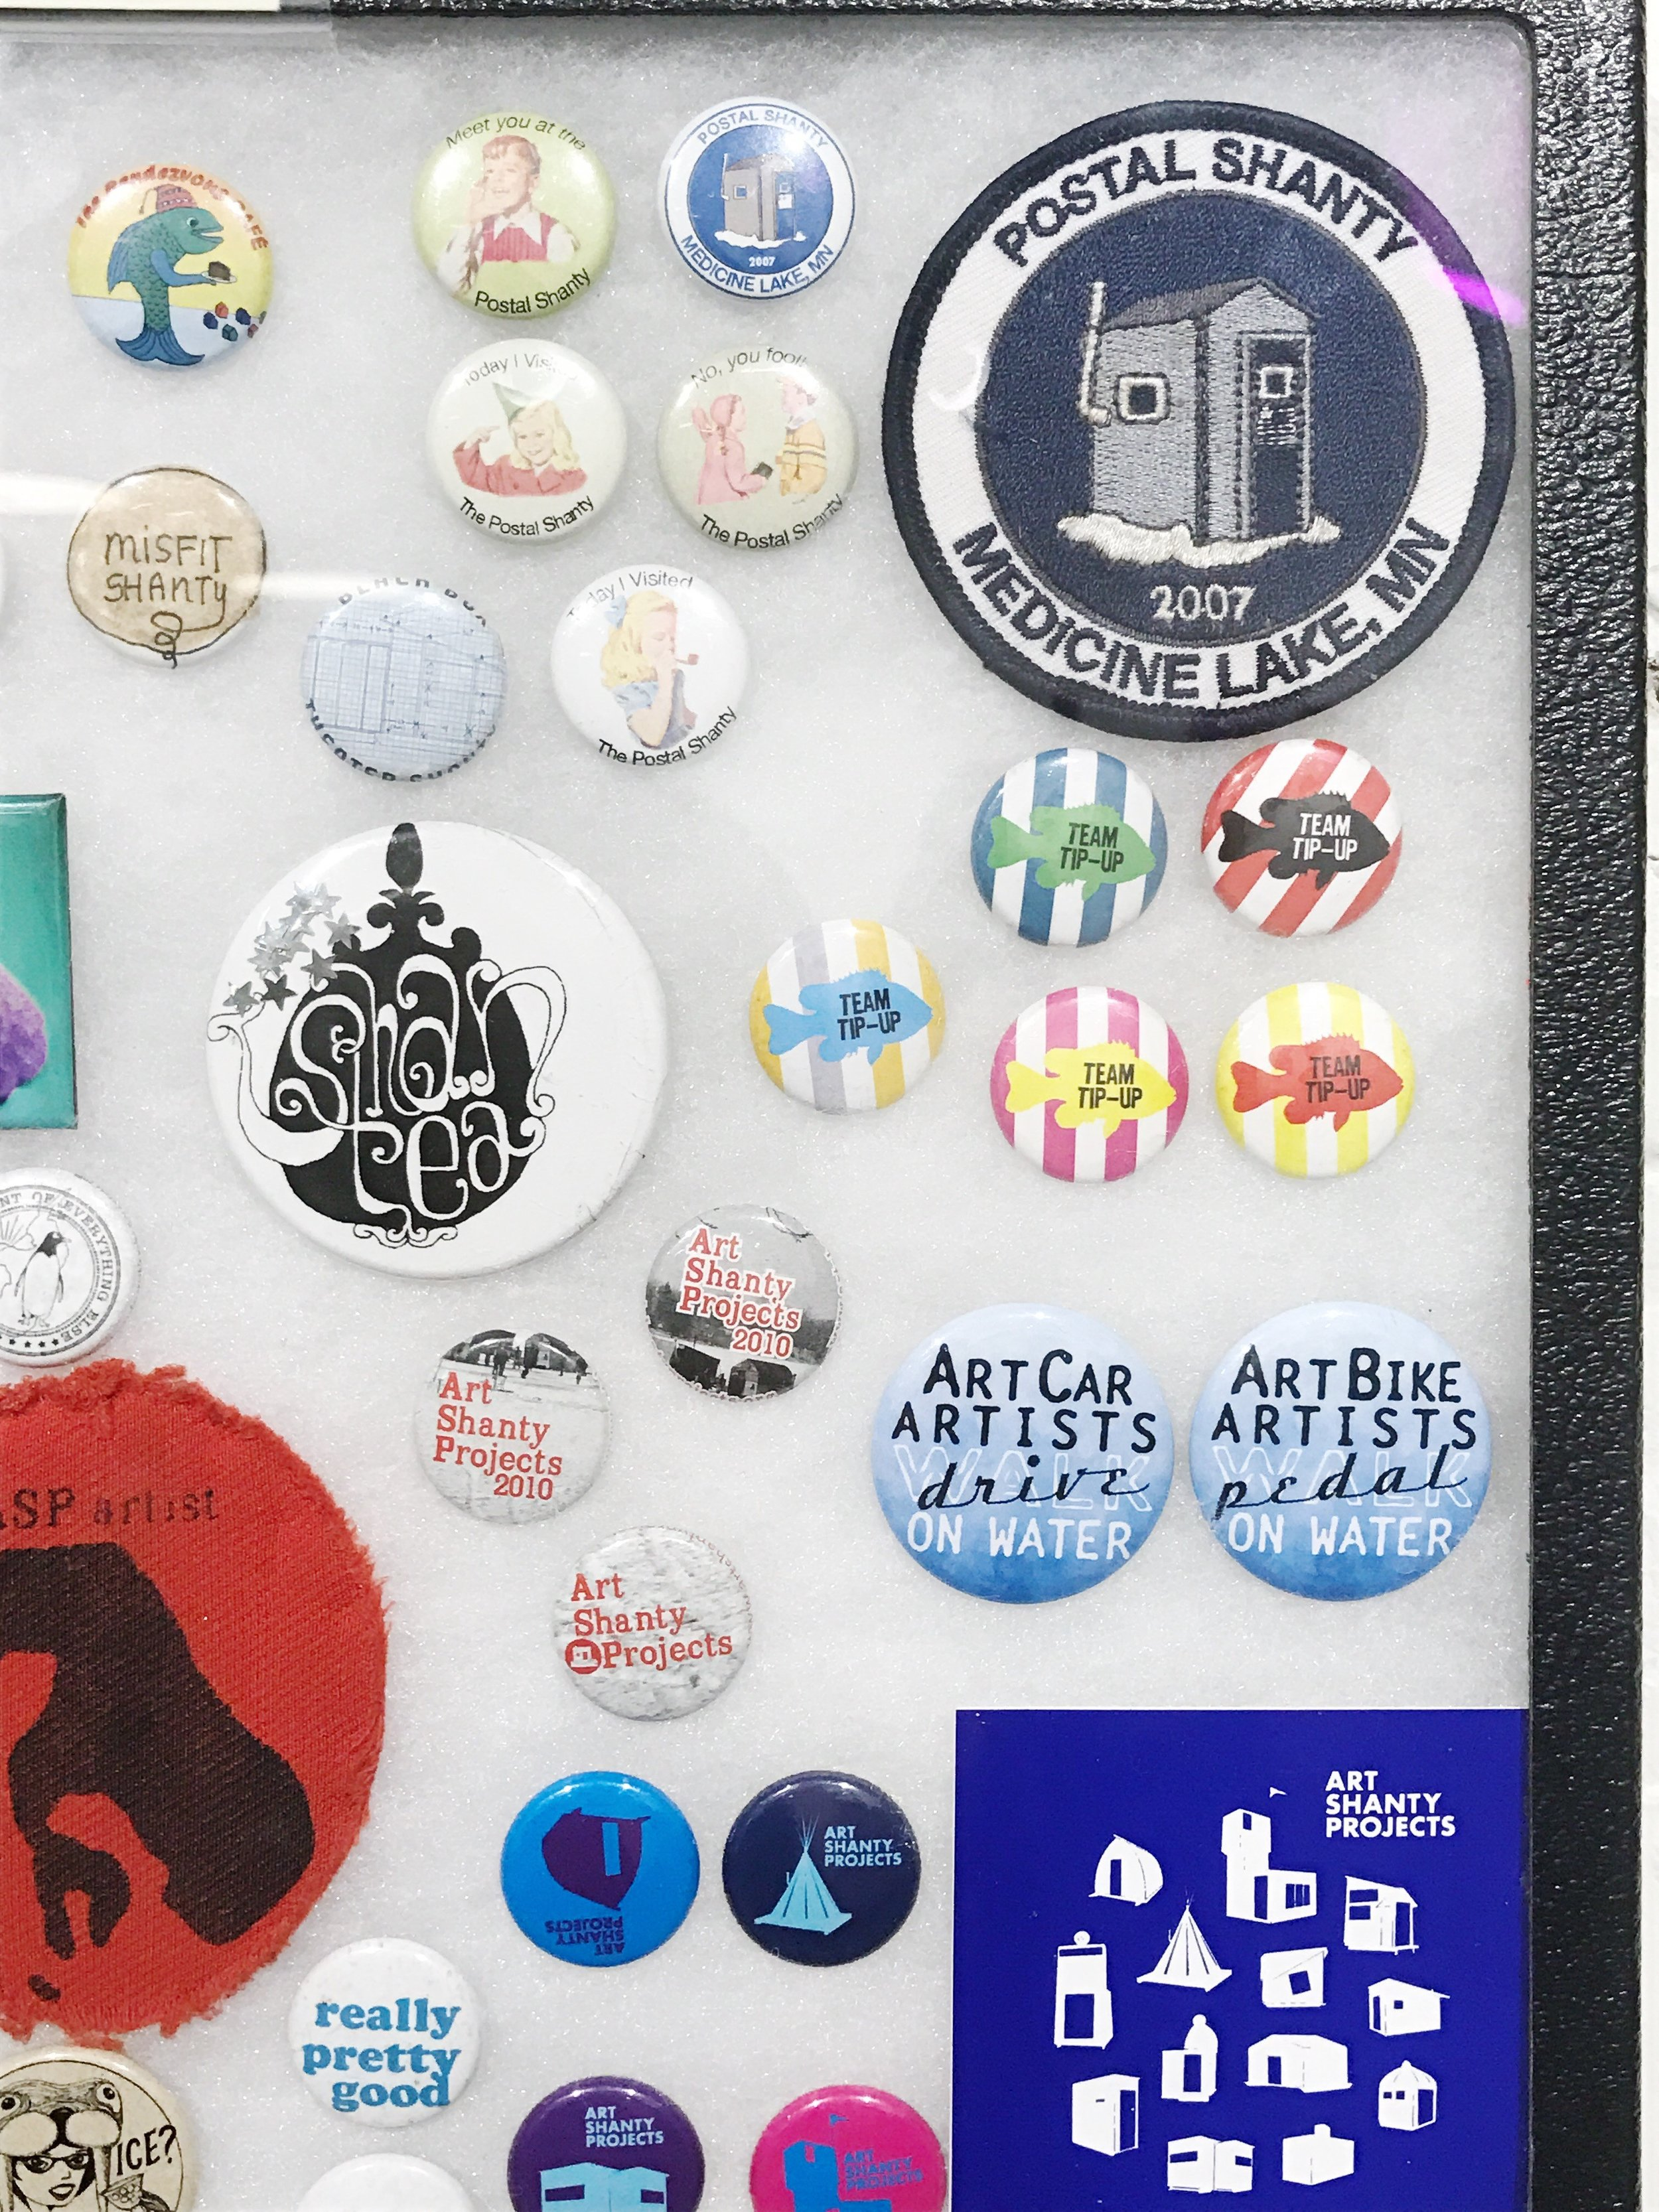 Some pins, patches and bumper stickers, commemorating Art Shanties of years past.